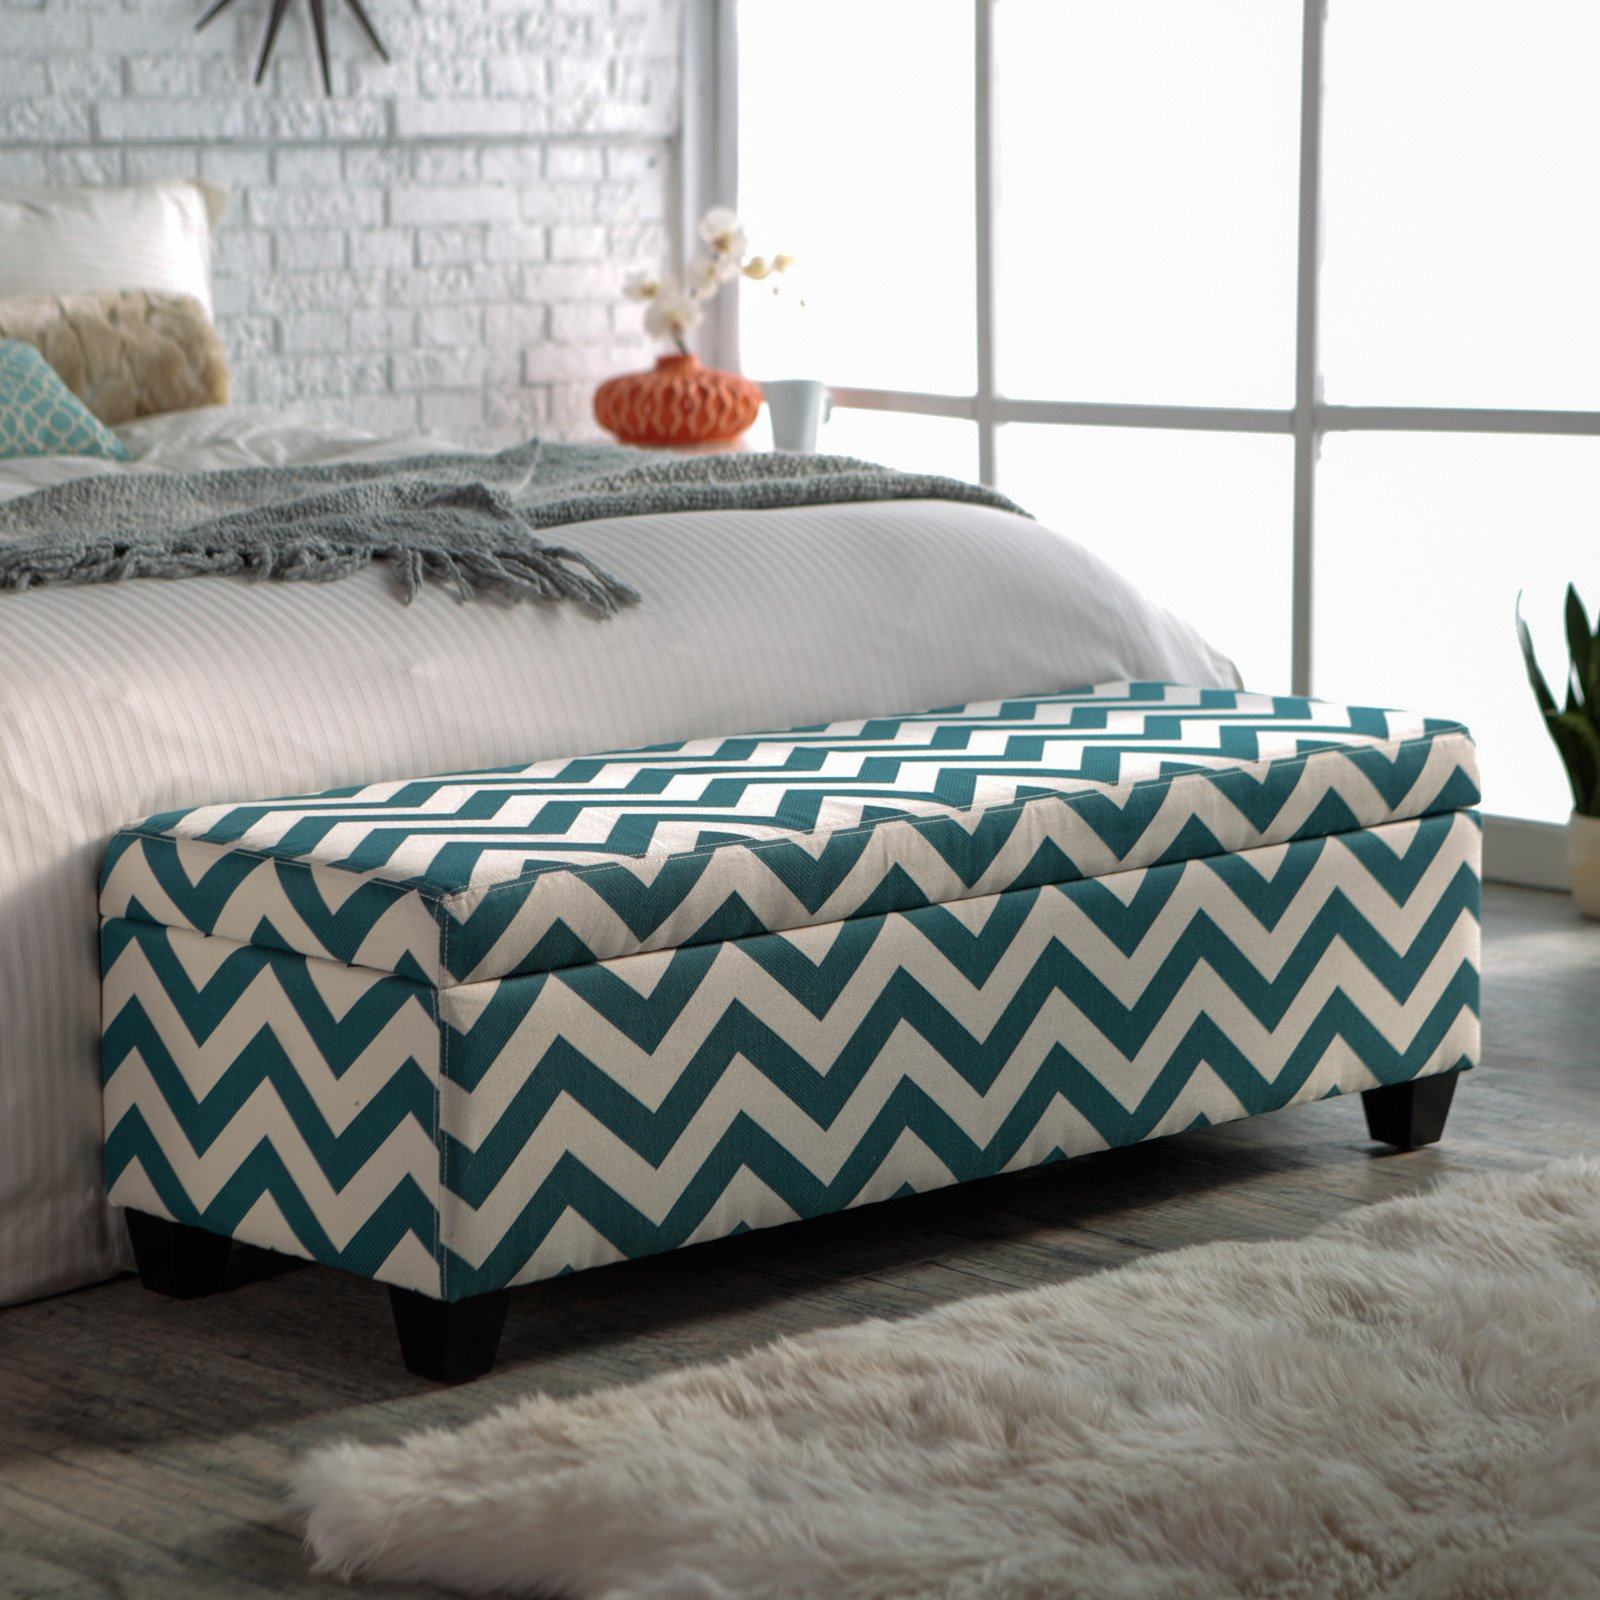 Bed ottoman bench Giving Extra Sophistication You Cannot Deny ...